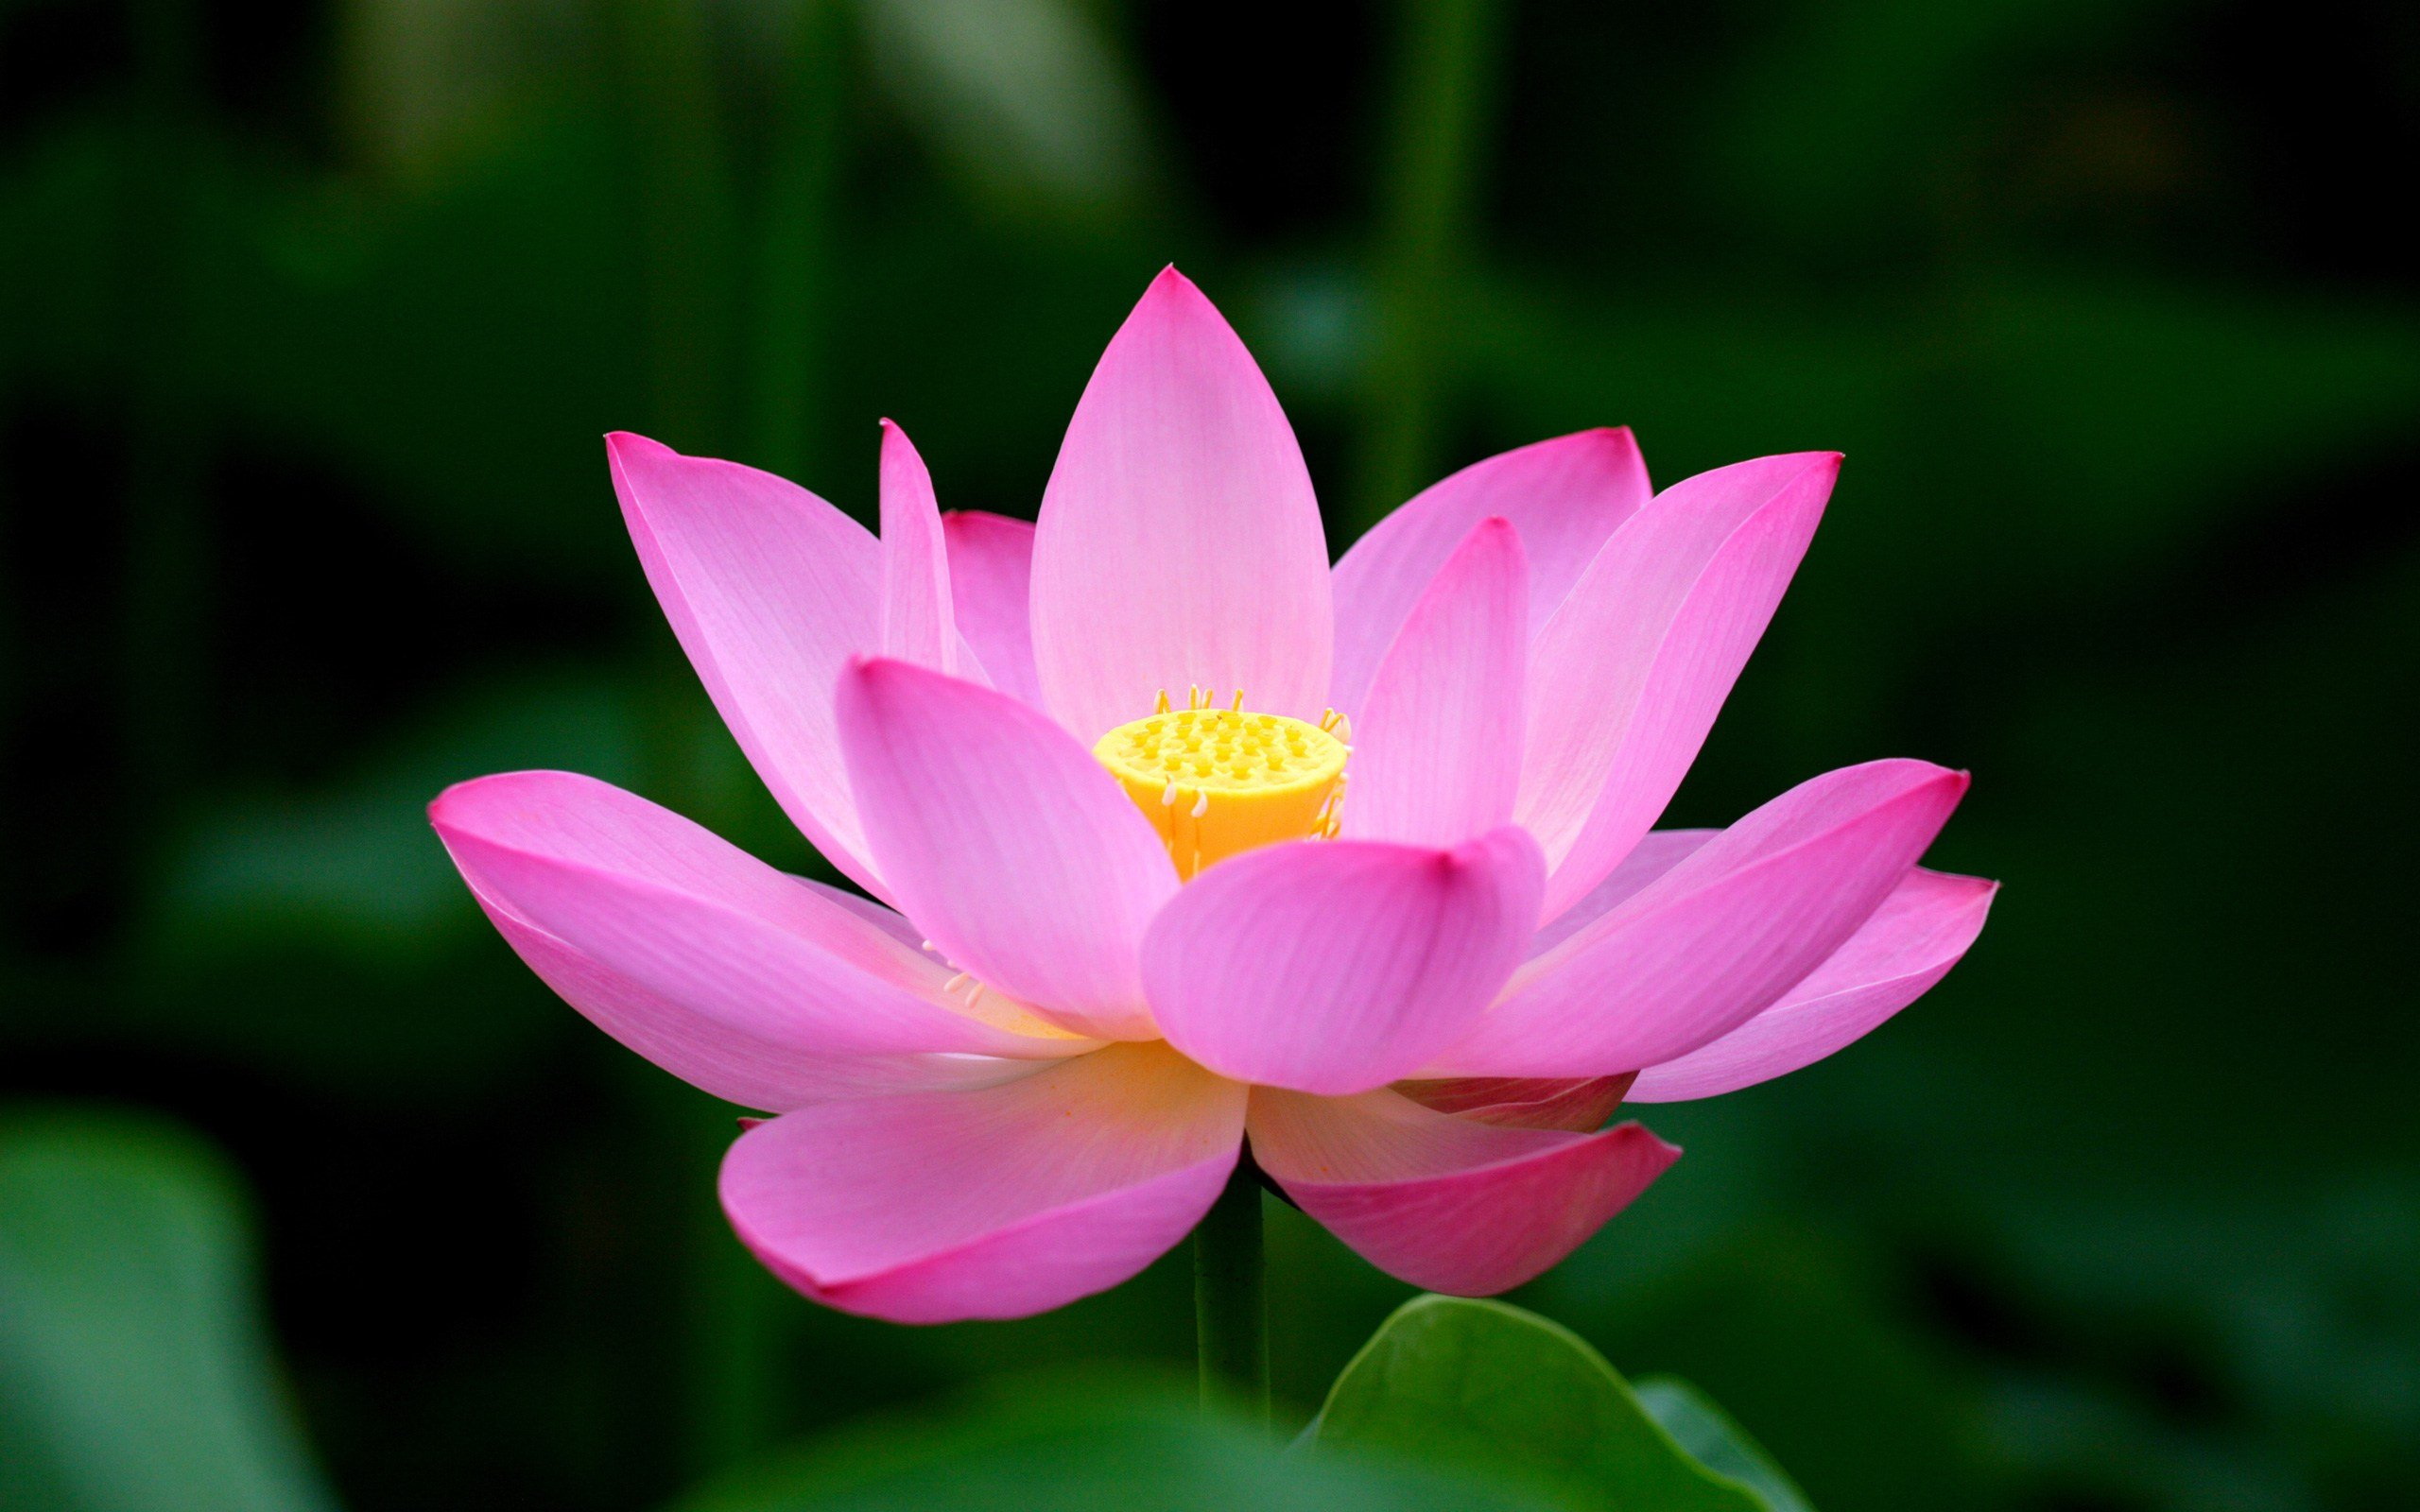 Lotus flower meaning and symbolism mythologian lotus flower meaning and symbolism buycottarizona Choice Image